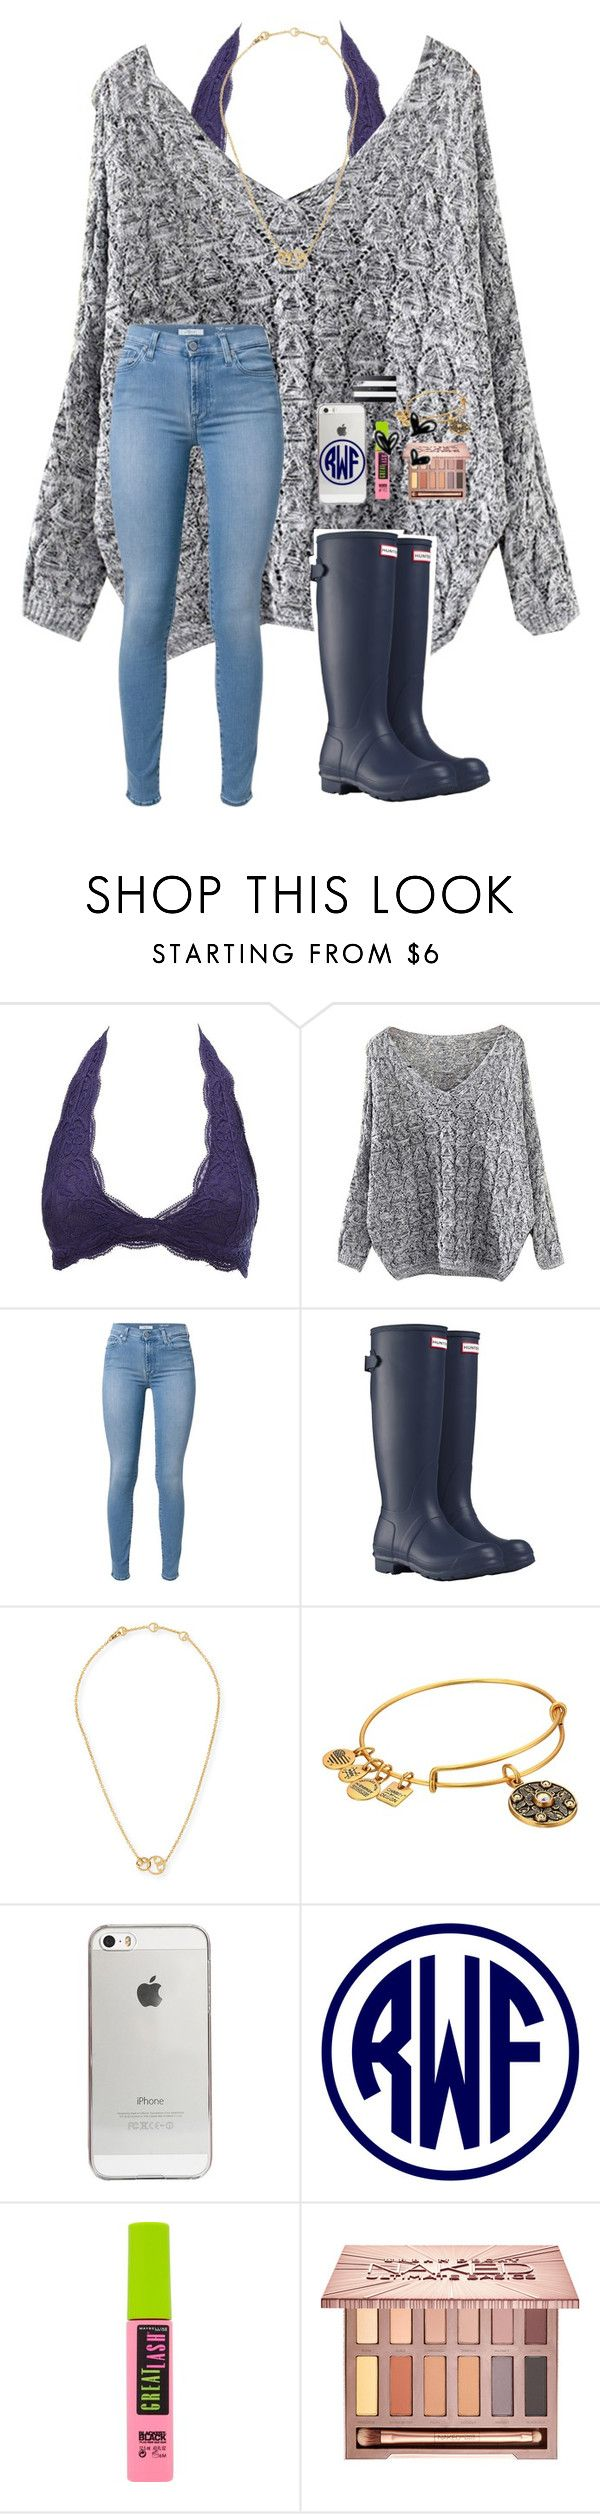 """""""4 day weekend!!!!!!"""" by a-devo ❤ liked on Polyvore featuring Charlotte Russe, 7 For All Mankind, Hunter, Tory Burch, Alex and Ani, Agent 18, Maybelline, Urban Decay and Sephora Collection"""